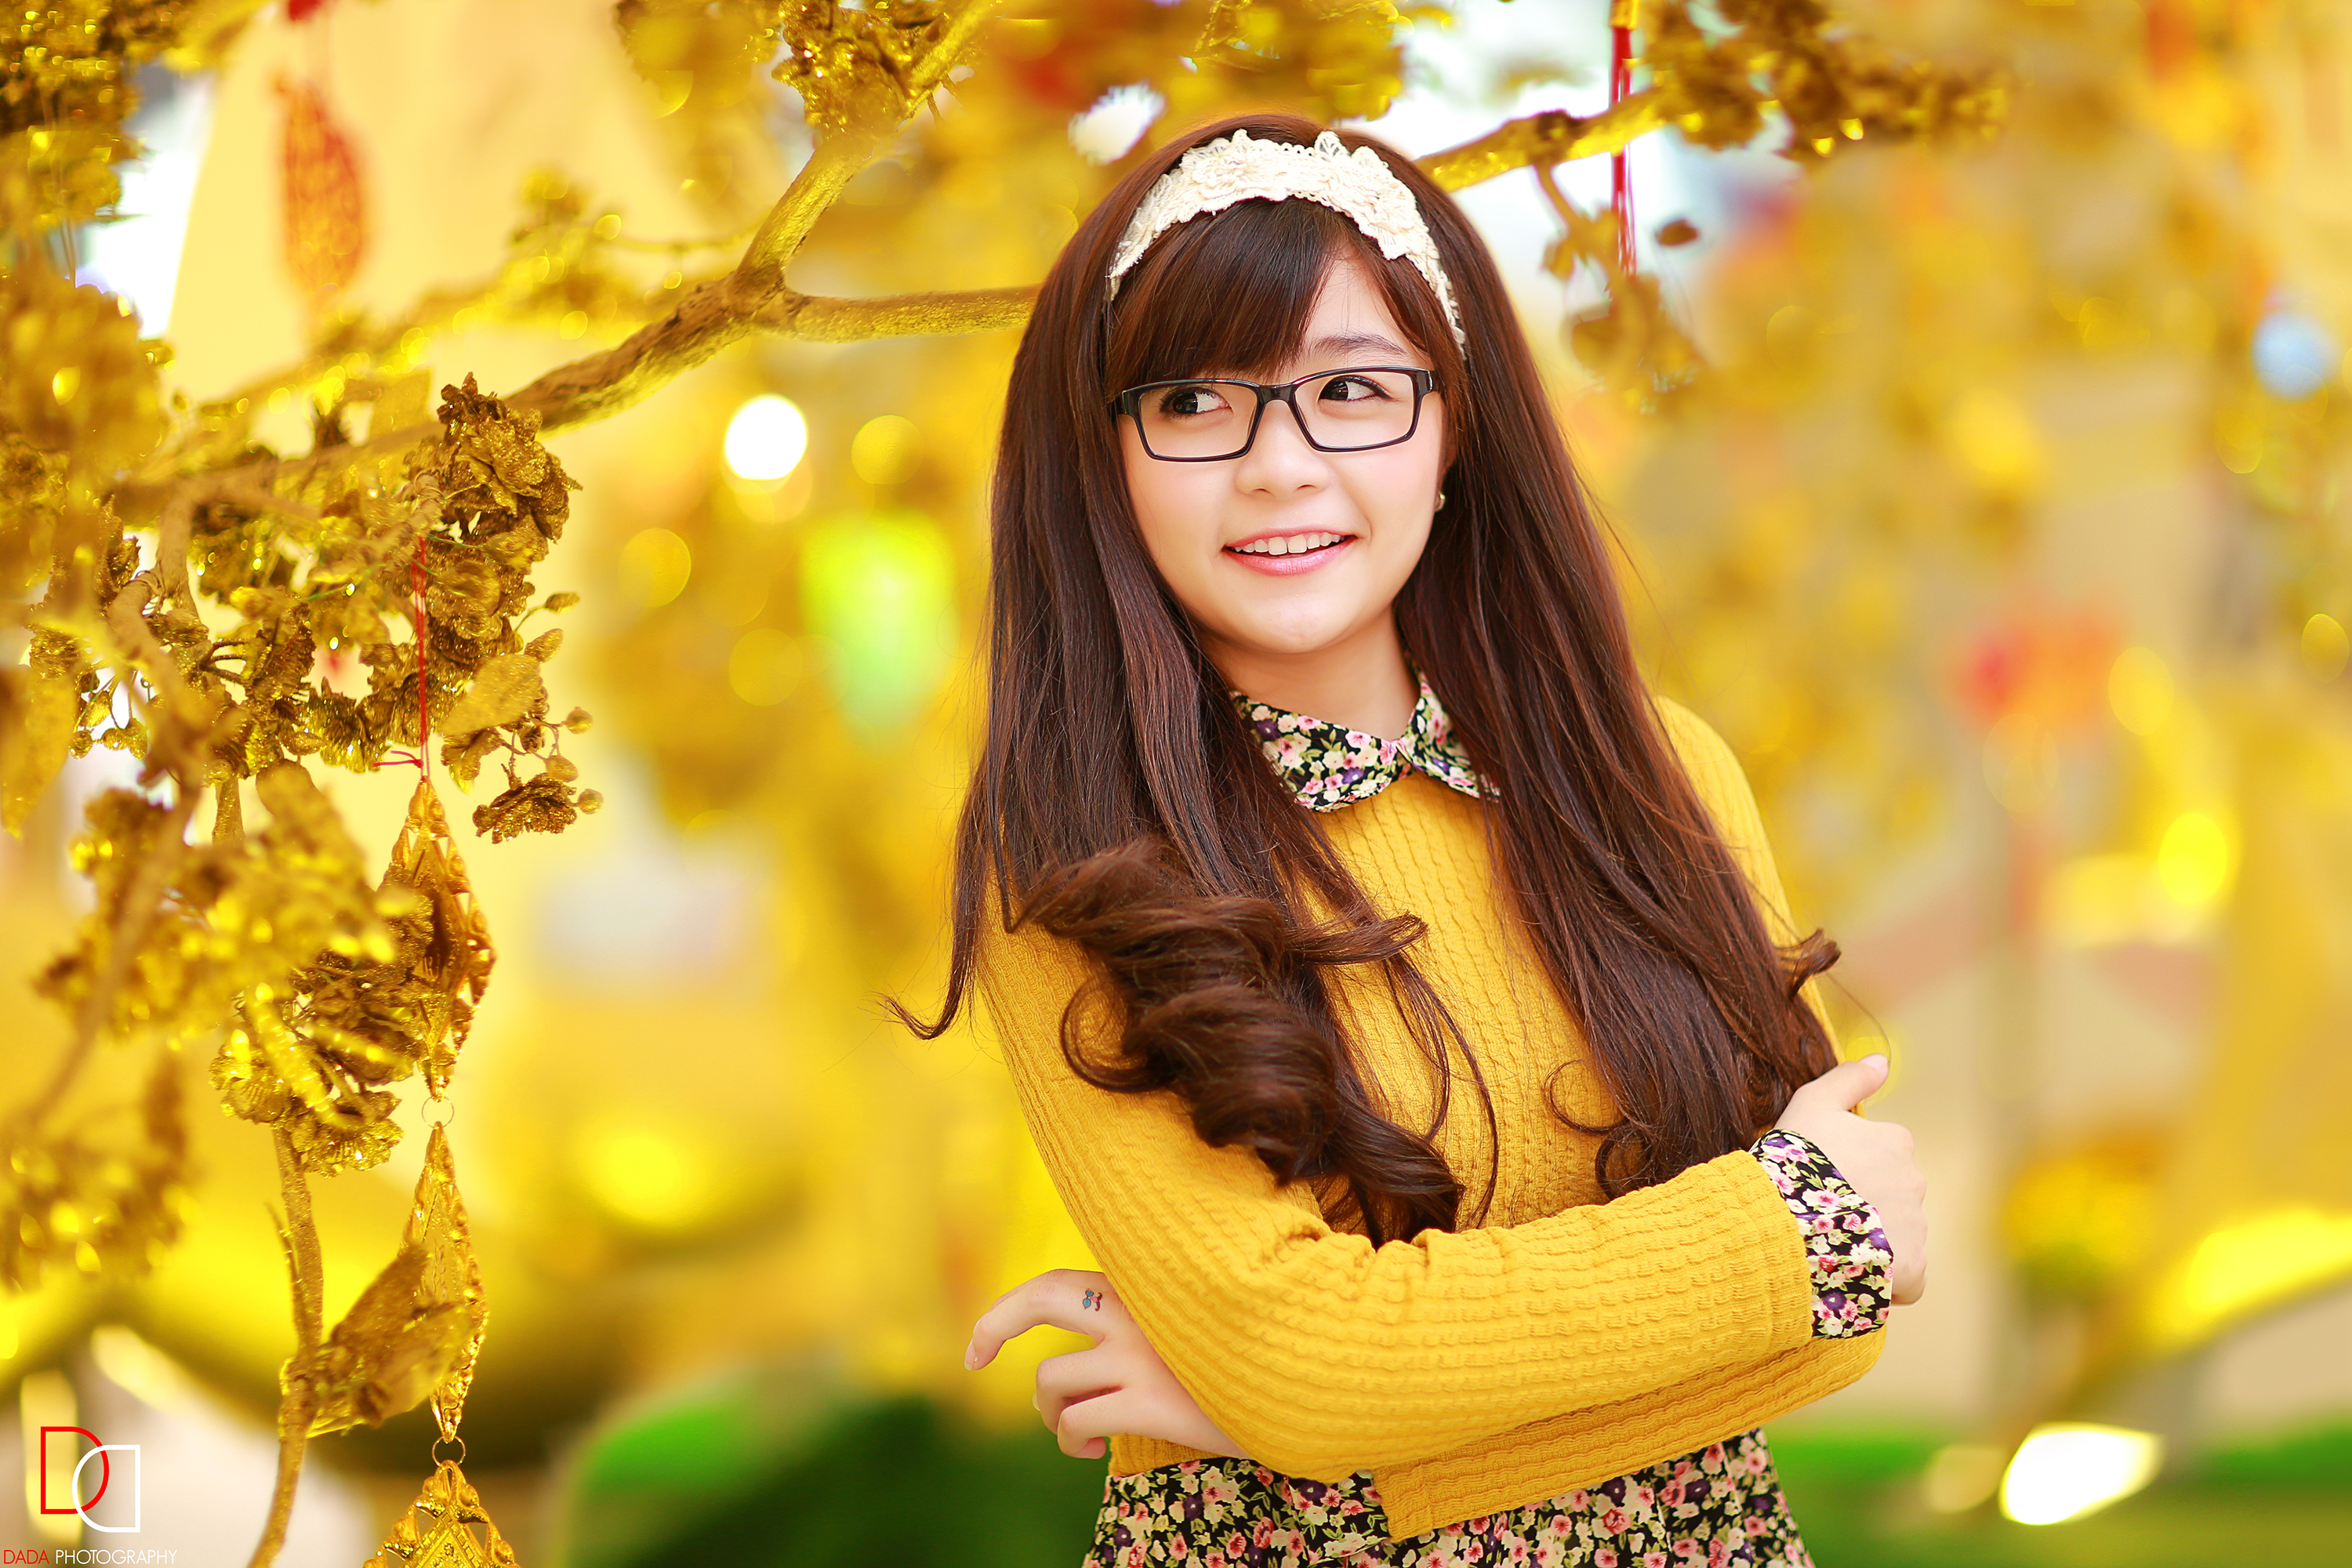 Vietnamese Teen Girls Wallpapers Pack   3000x2000   Download HD 3000x2000